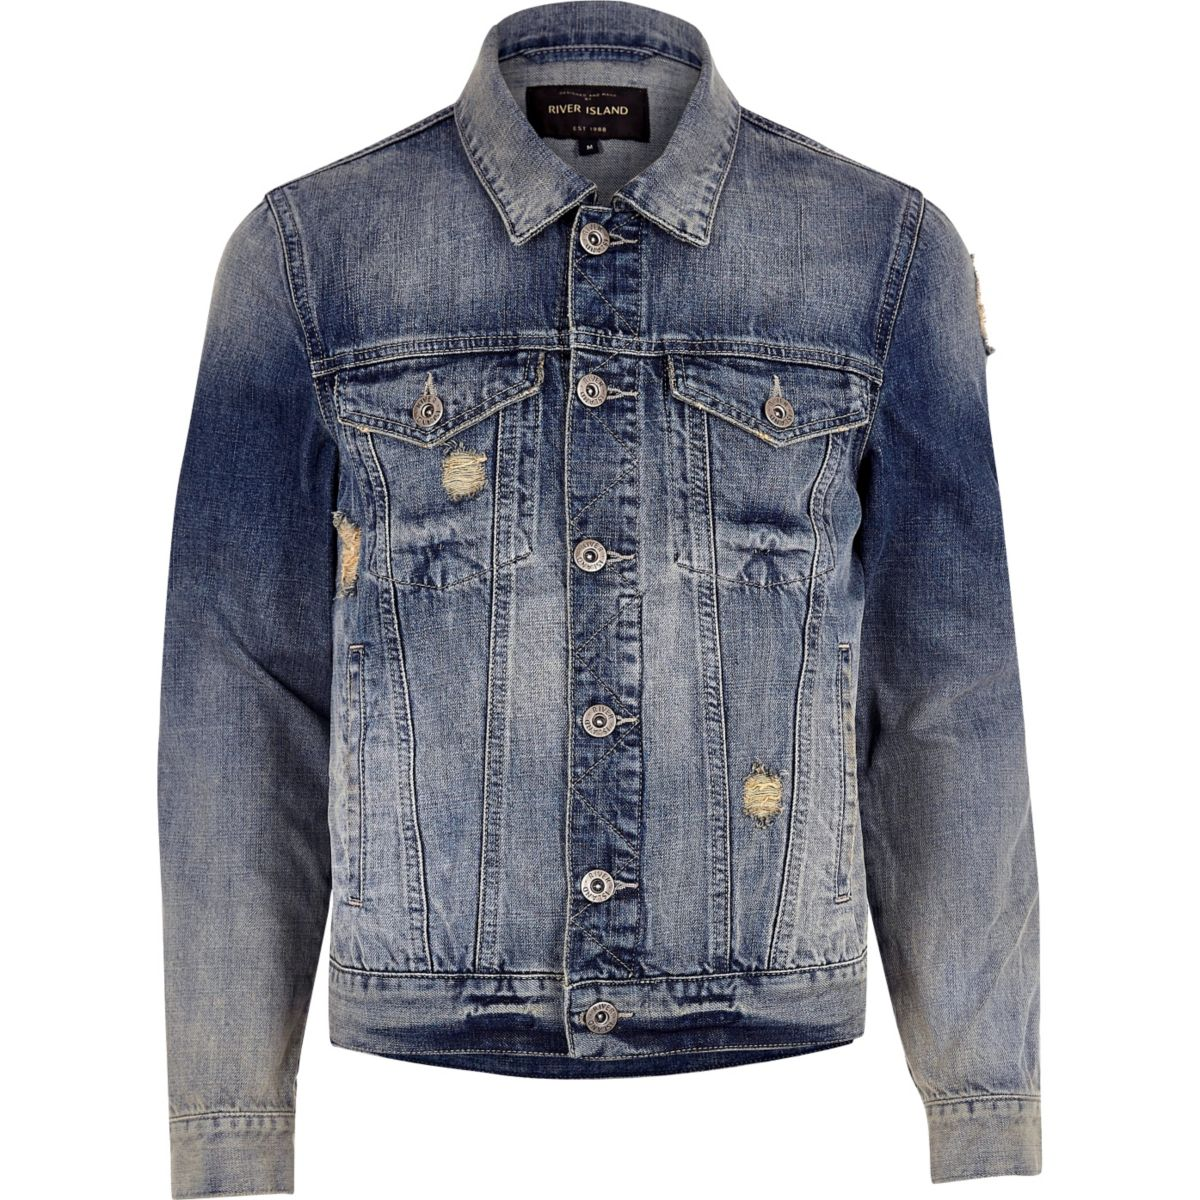 Blue acid wash distressed denim jacket